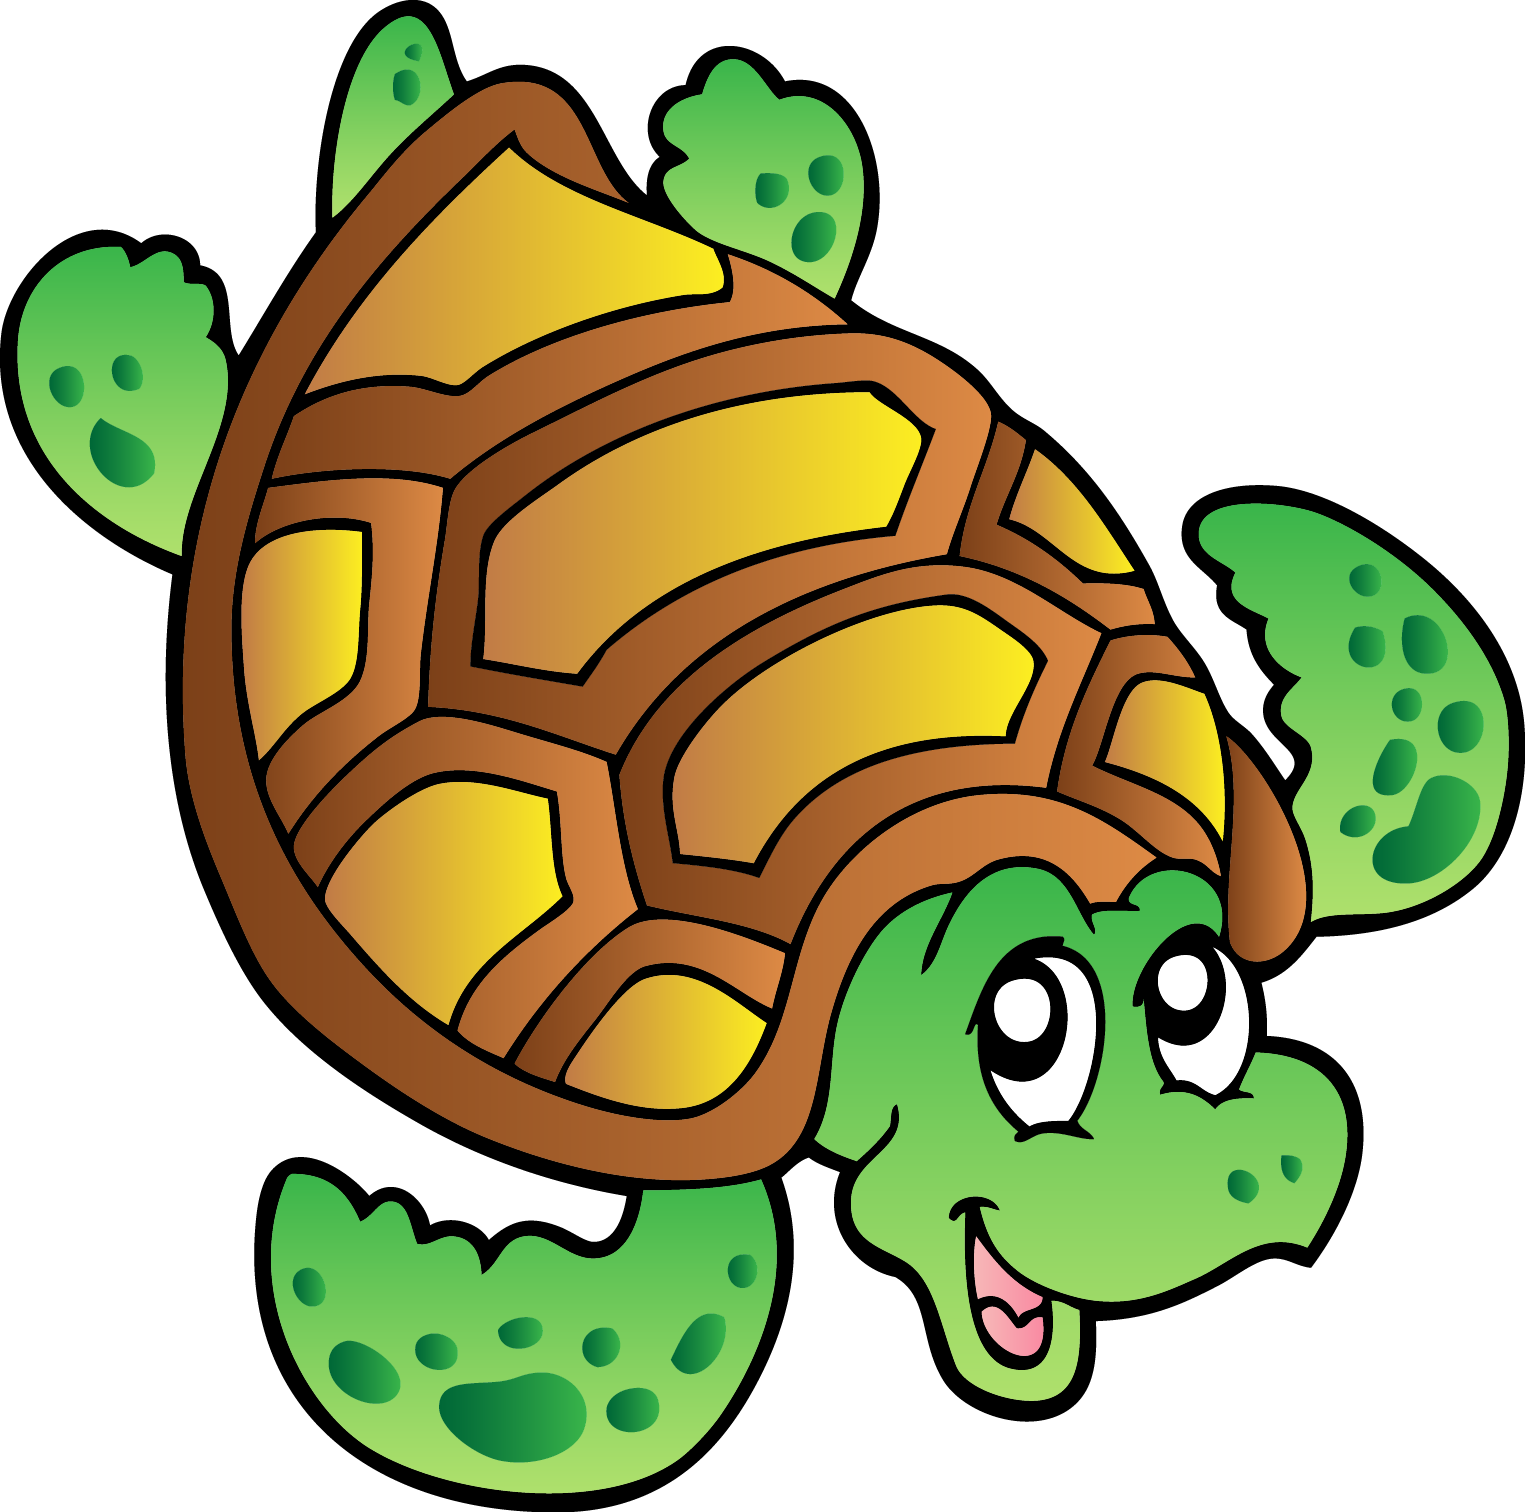 Turtle Cartoon Drawing Turtle Png Image And Clipart Turtle Drawing Cartoon Turtle Art Prints